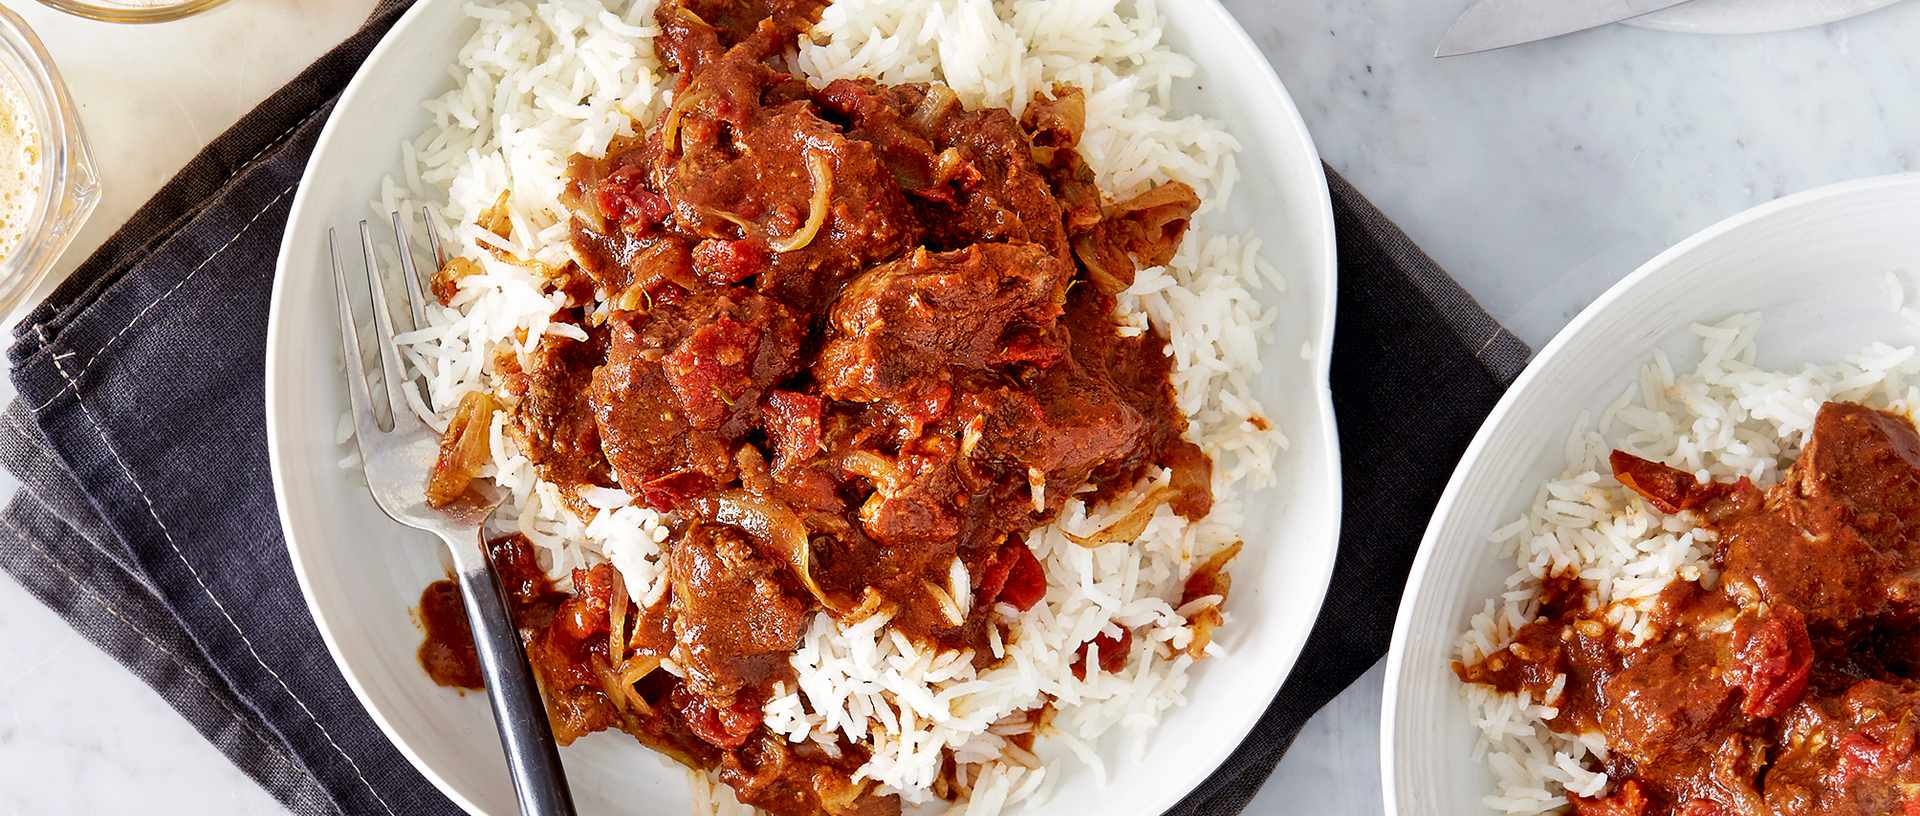 27 healthy low calorie curry recipes under 500 calories olive magazine cookeverydaynov10366 forumfinder Images